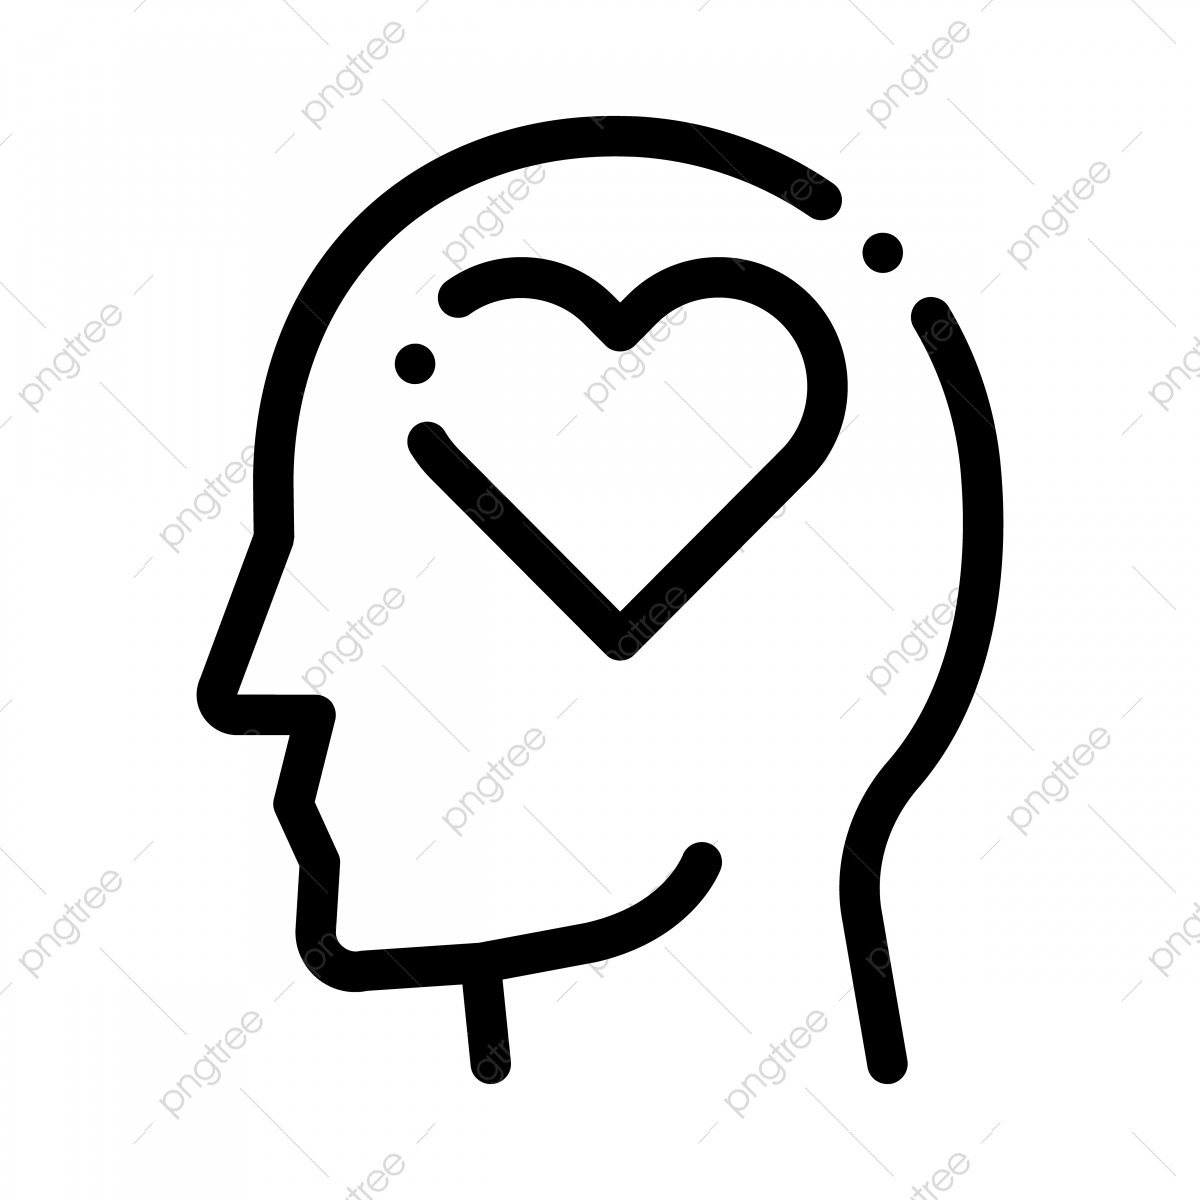 pngtree heart love symbol in man silhouette mind vector png image 5140966